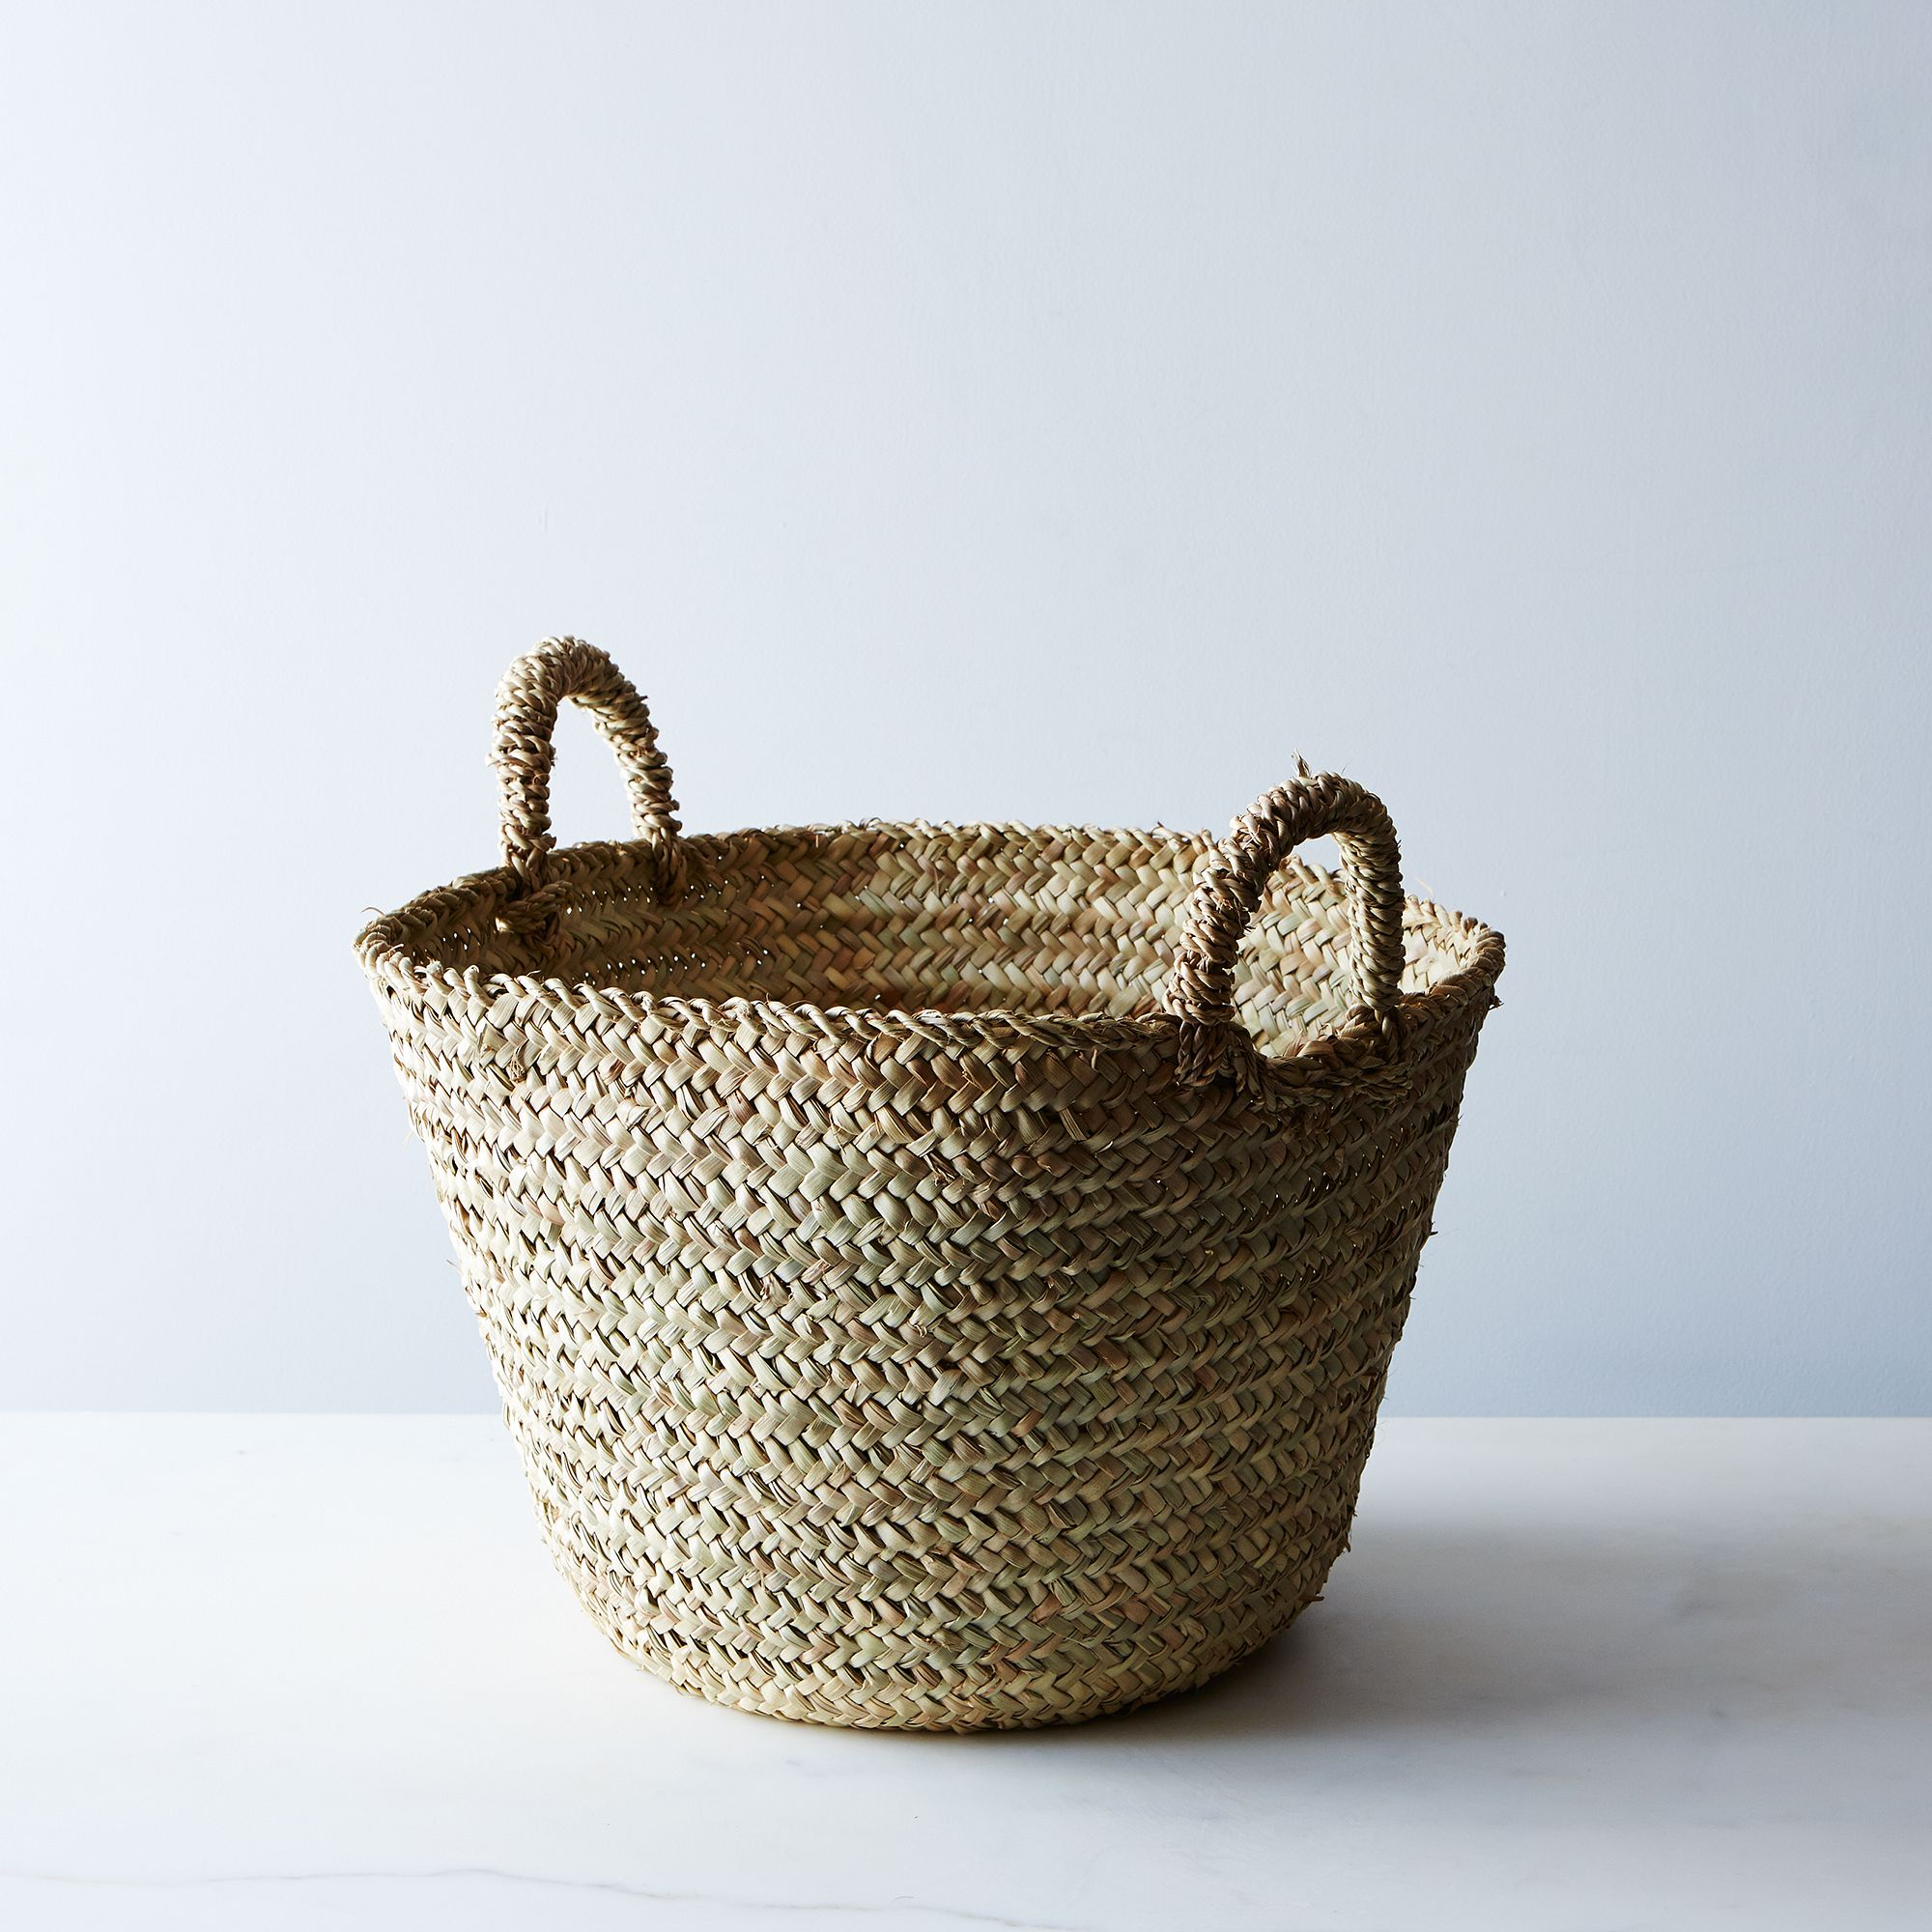 98daf832-a0f7-11e5-a190-0ef7535729df--2014-1217_elsie-green_moroccan-woven-basket_medium-078